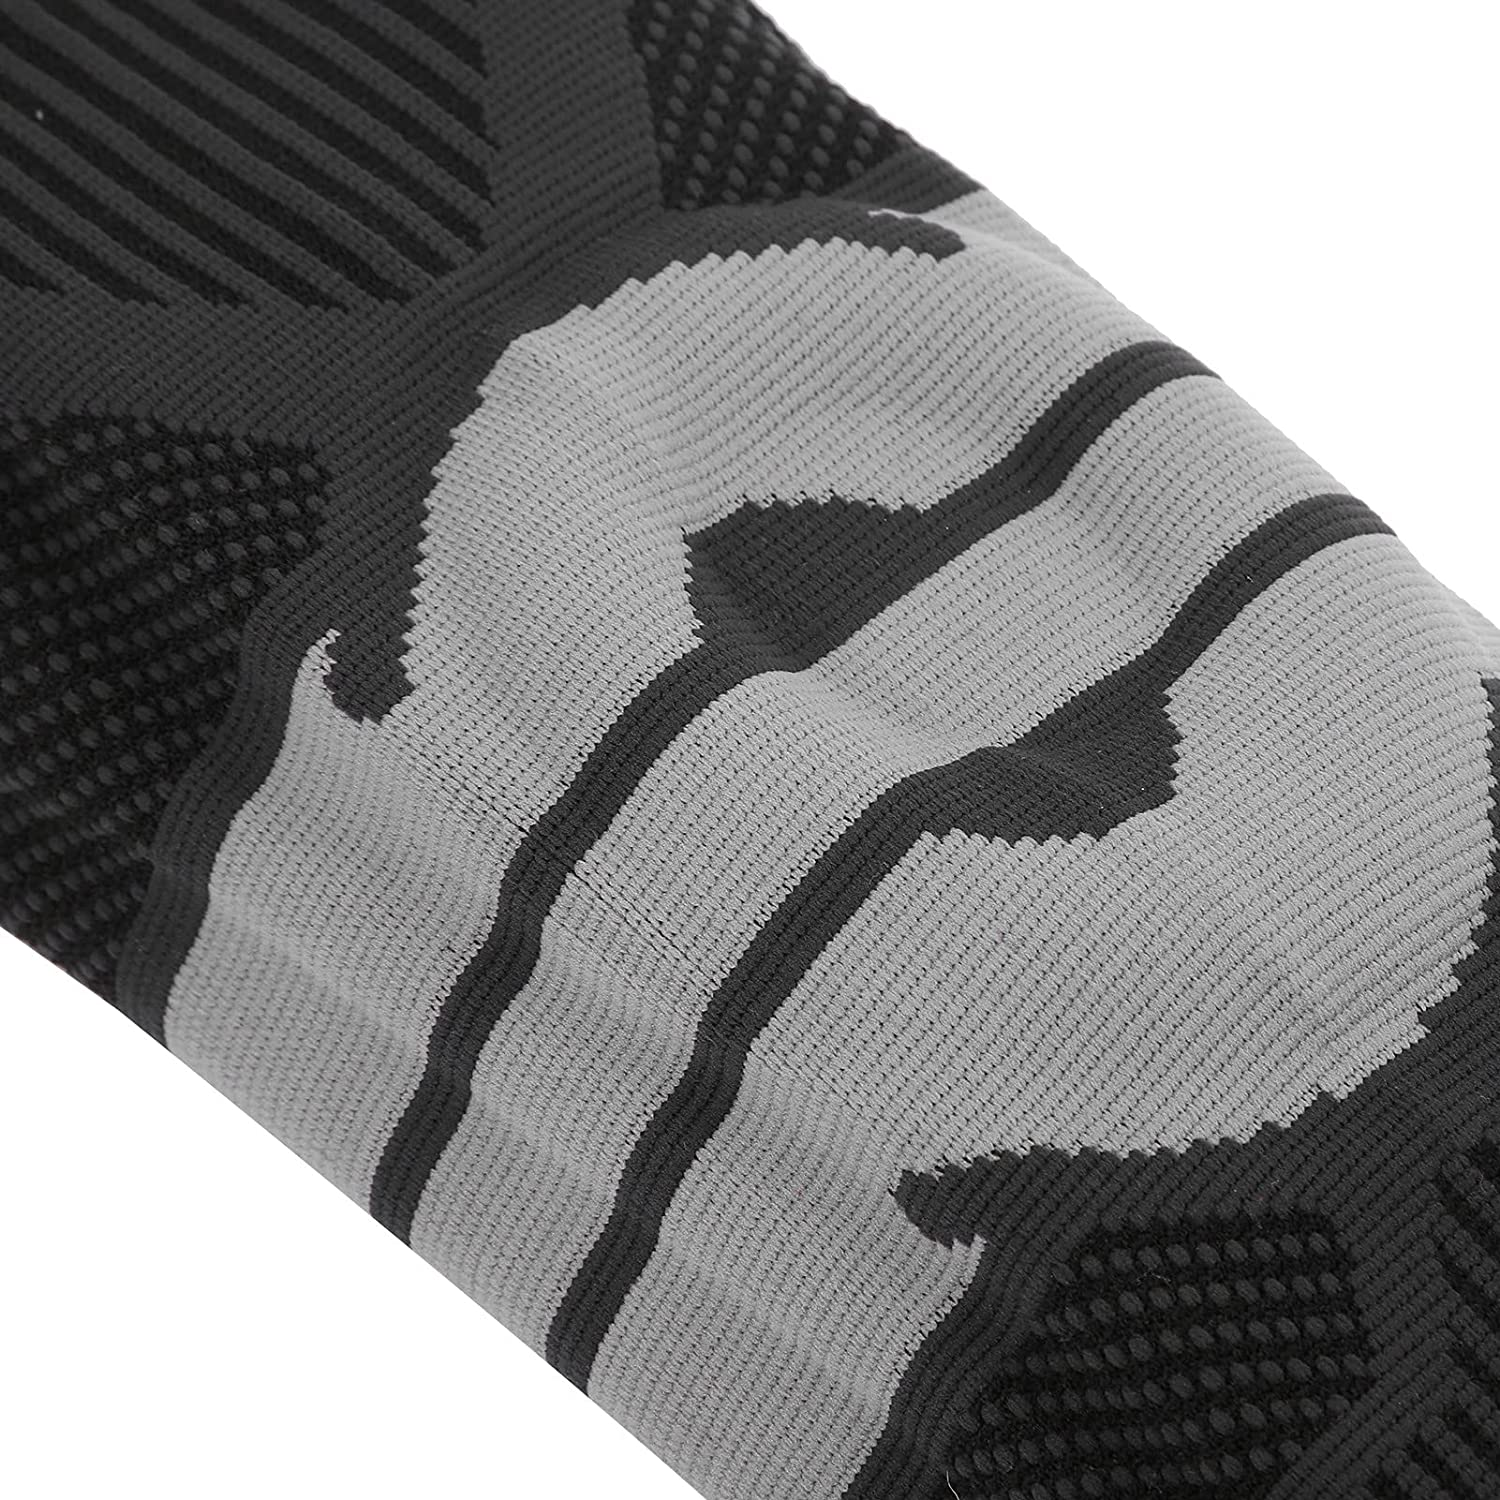 LZKW Many popular brands Knee Compression Sleeve No Pad Silica Allergy Ranking TOP15 Kne Gel